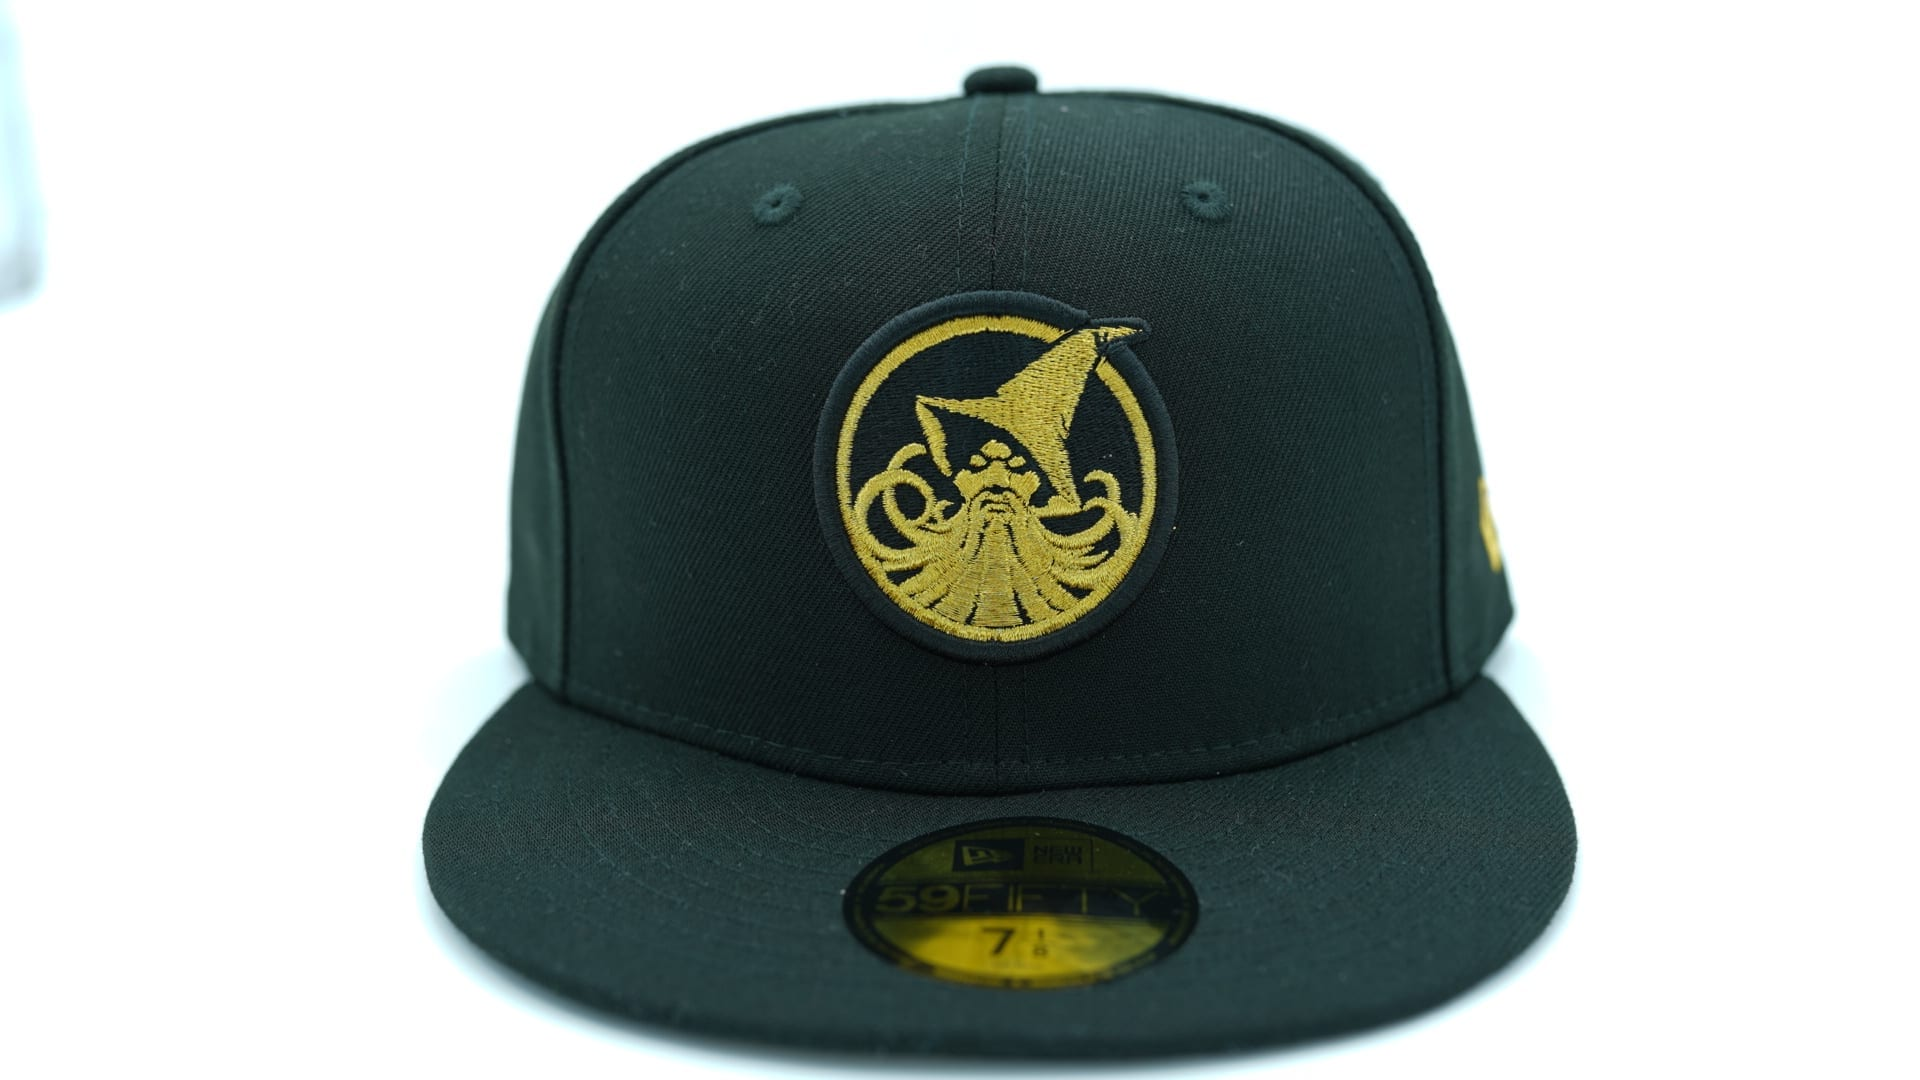 promo code b7297 2b183 Golden State Warriors NBA 50th Anniversary Patch Fitted Cap